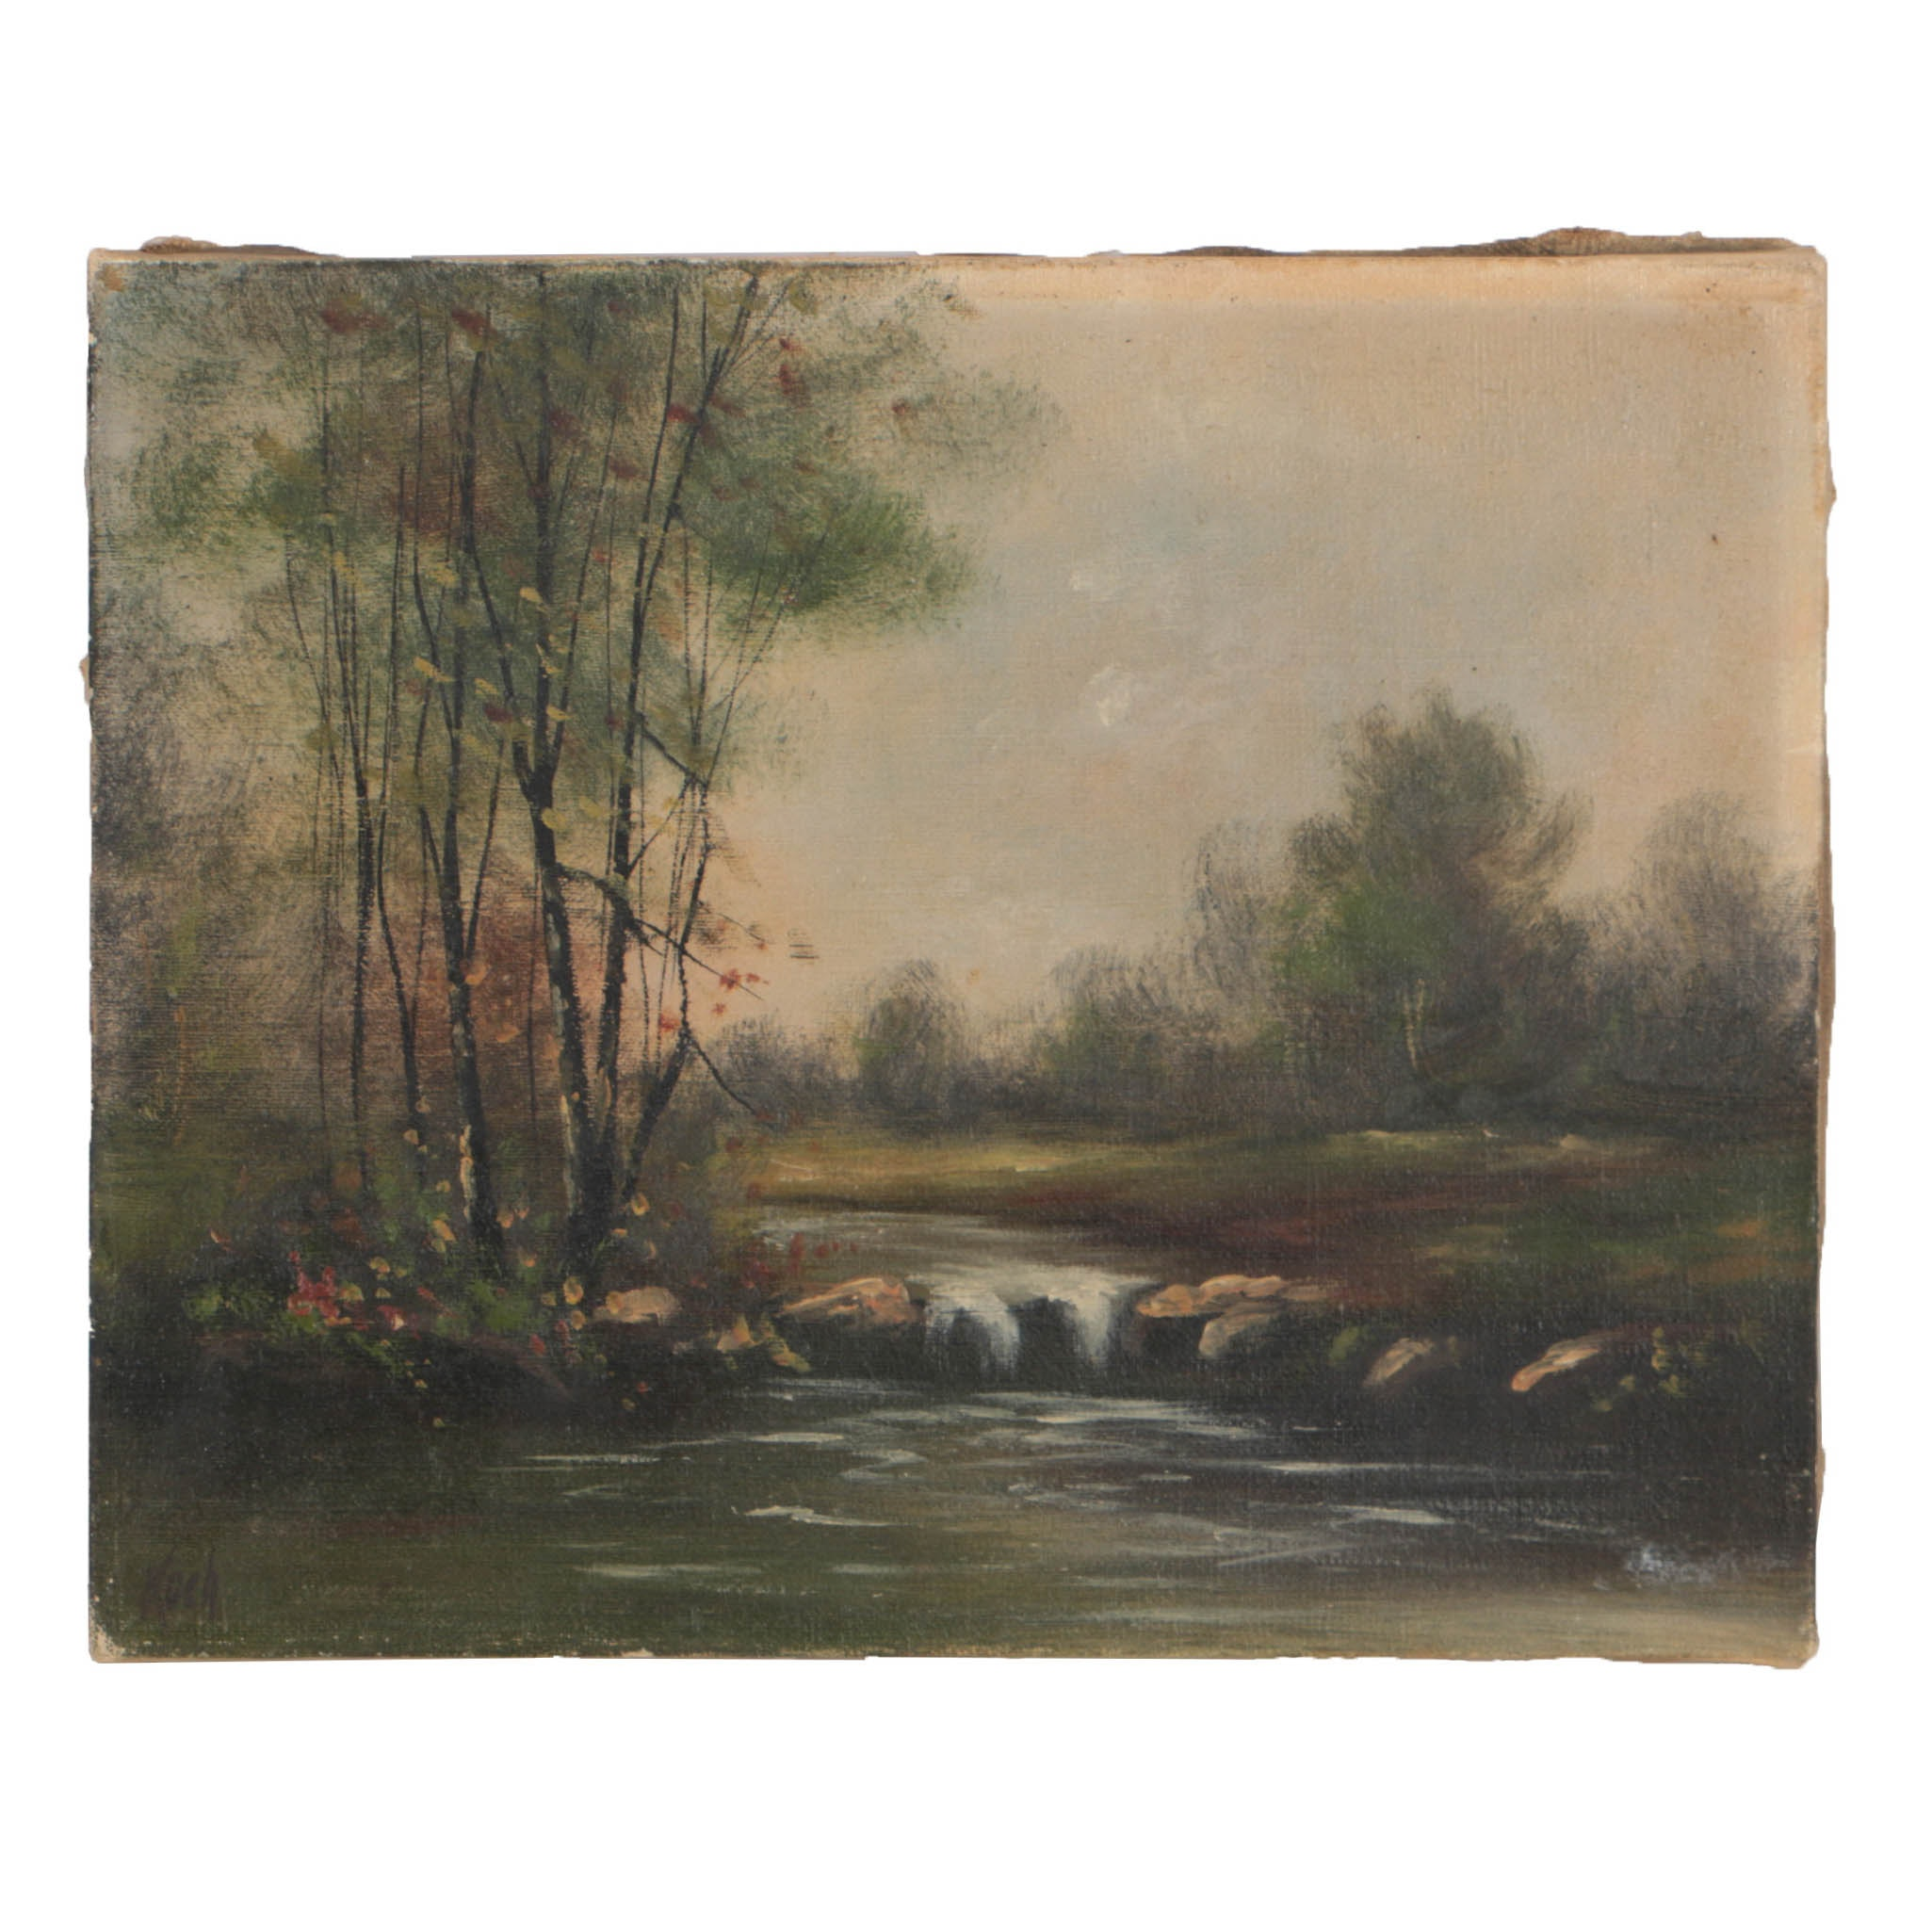 Koch Small-Scale Oil Painting on Canvas Creek Landscape